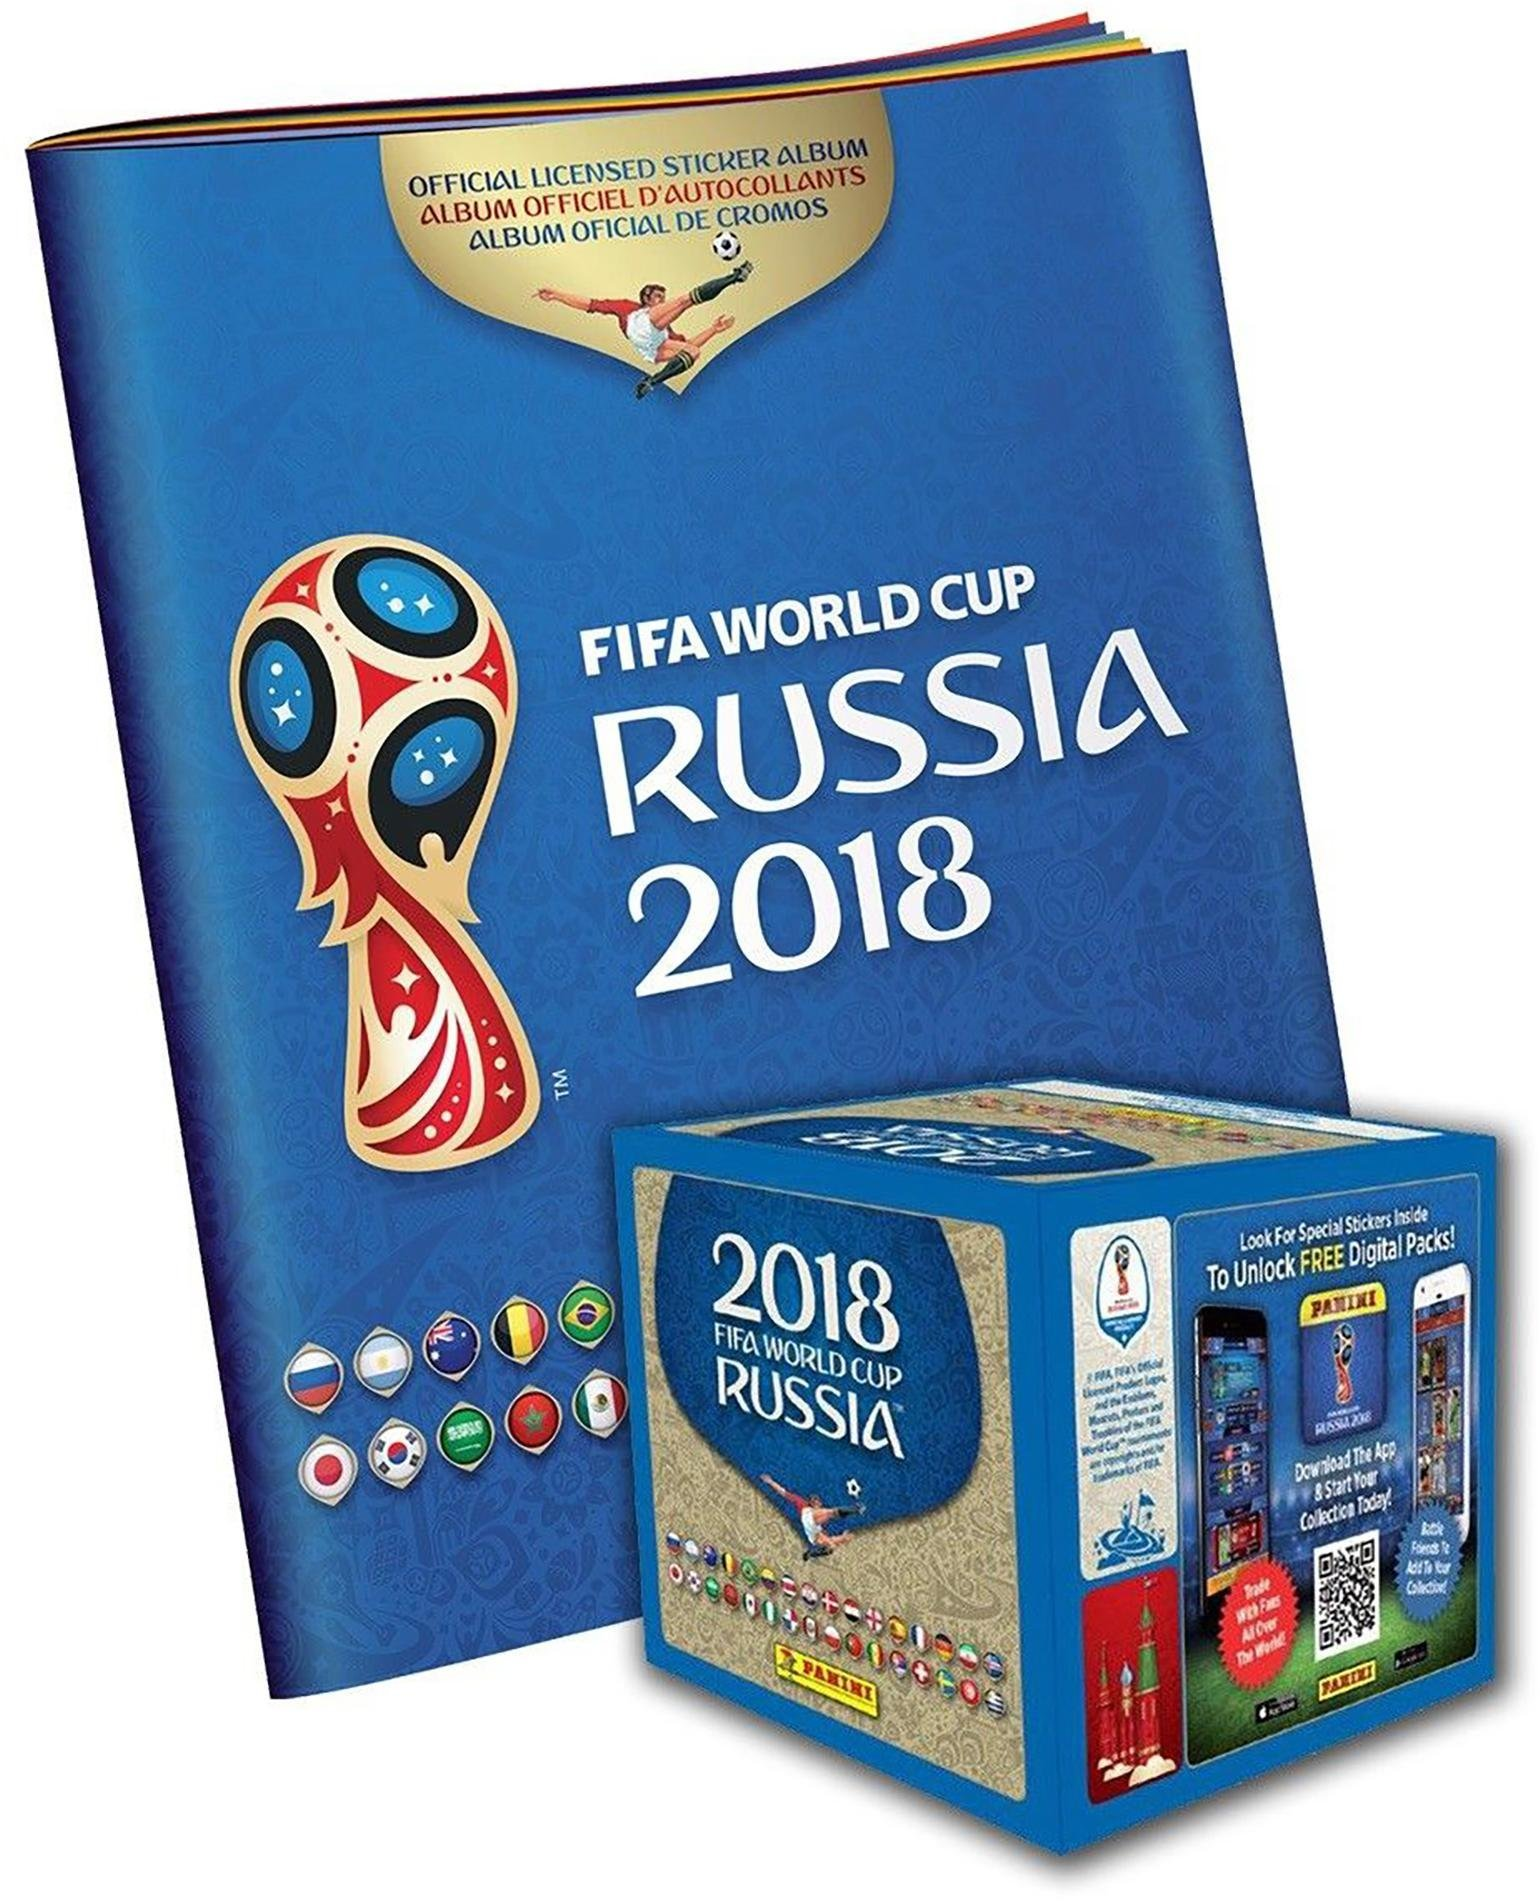 2018 Panini Russia FIFA World Cup Soccer Sticker Bundle with 50 Pack Box & Sticker Album - Fanatics Authentic Certified